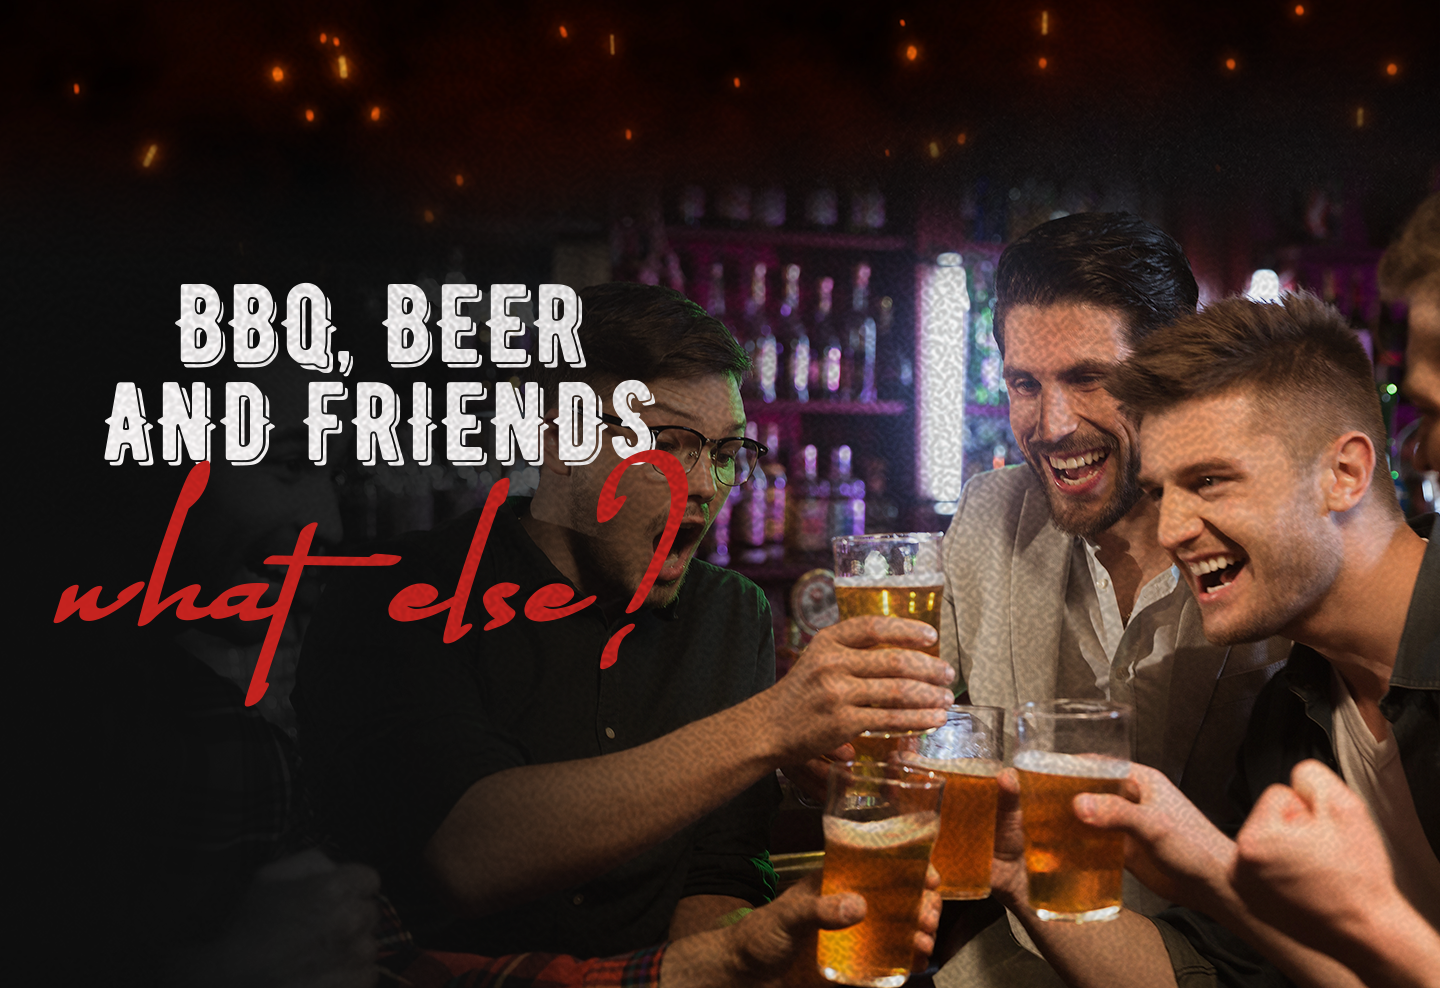 BANNER 2 - BBQ, BEER AND FRIENDS - 2